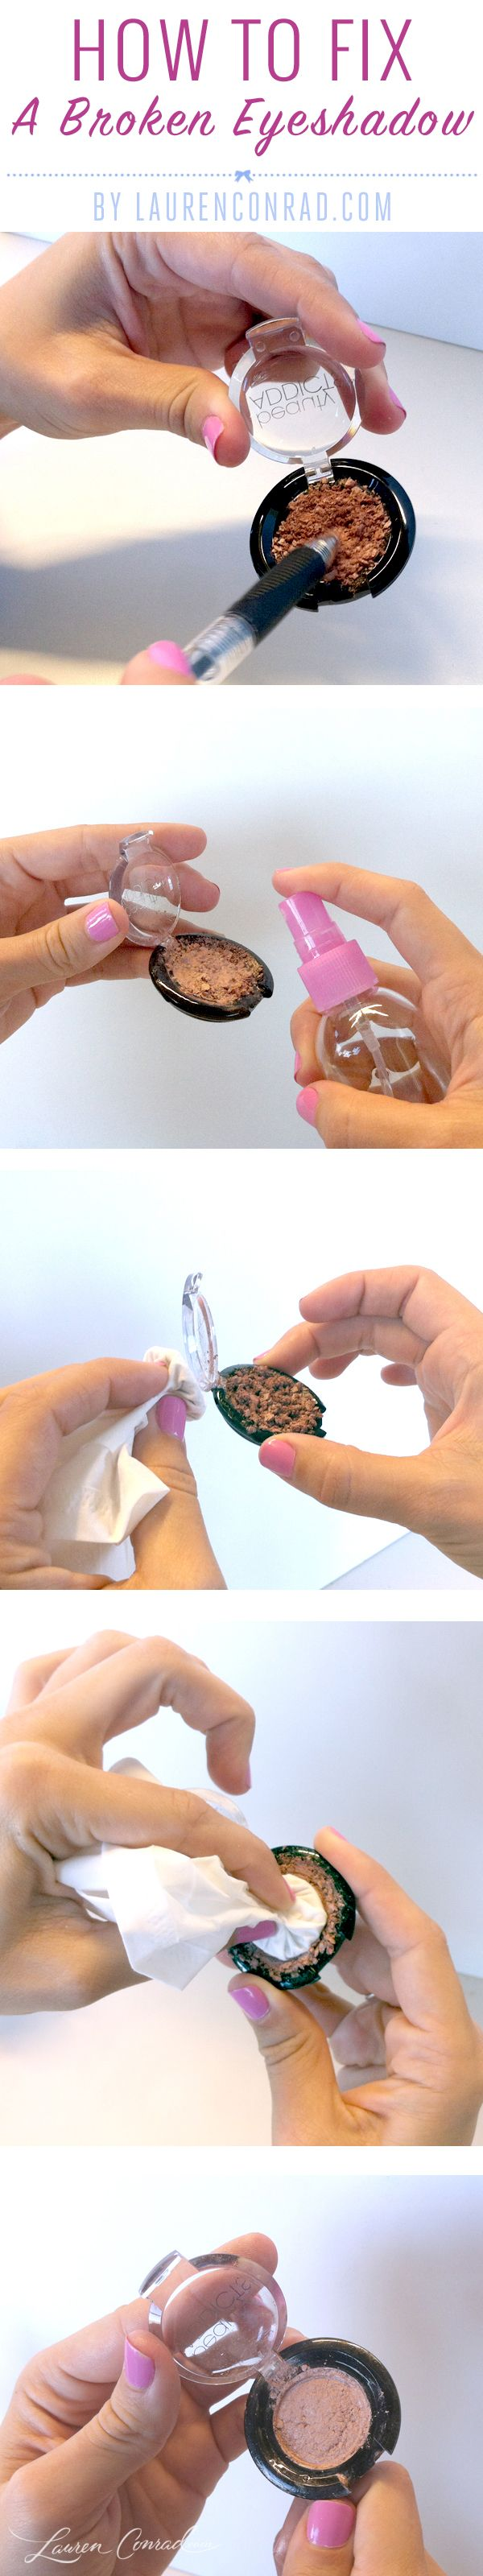 If you've ever cracked your favorite eyeshadow, instead of going out and replacing it, try this trusty trick instead…